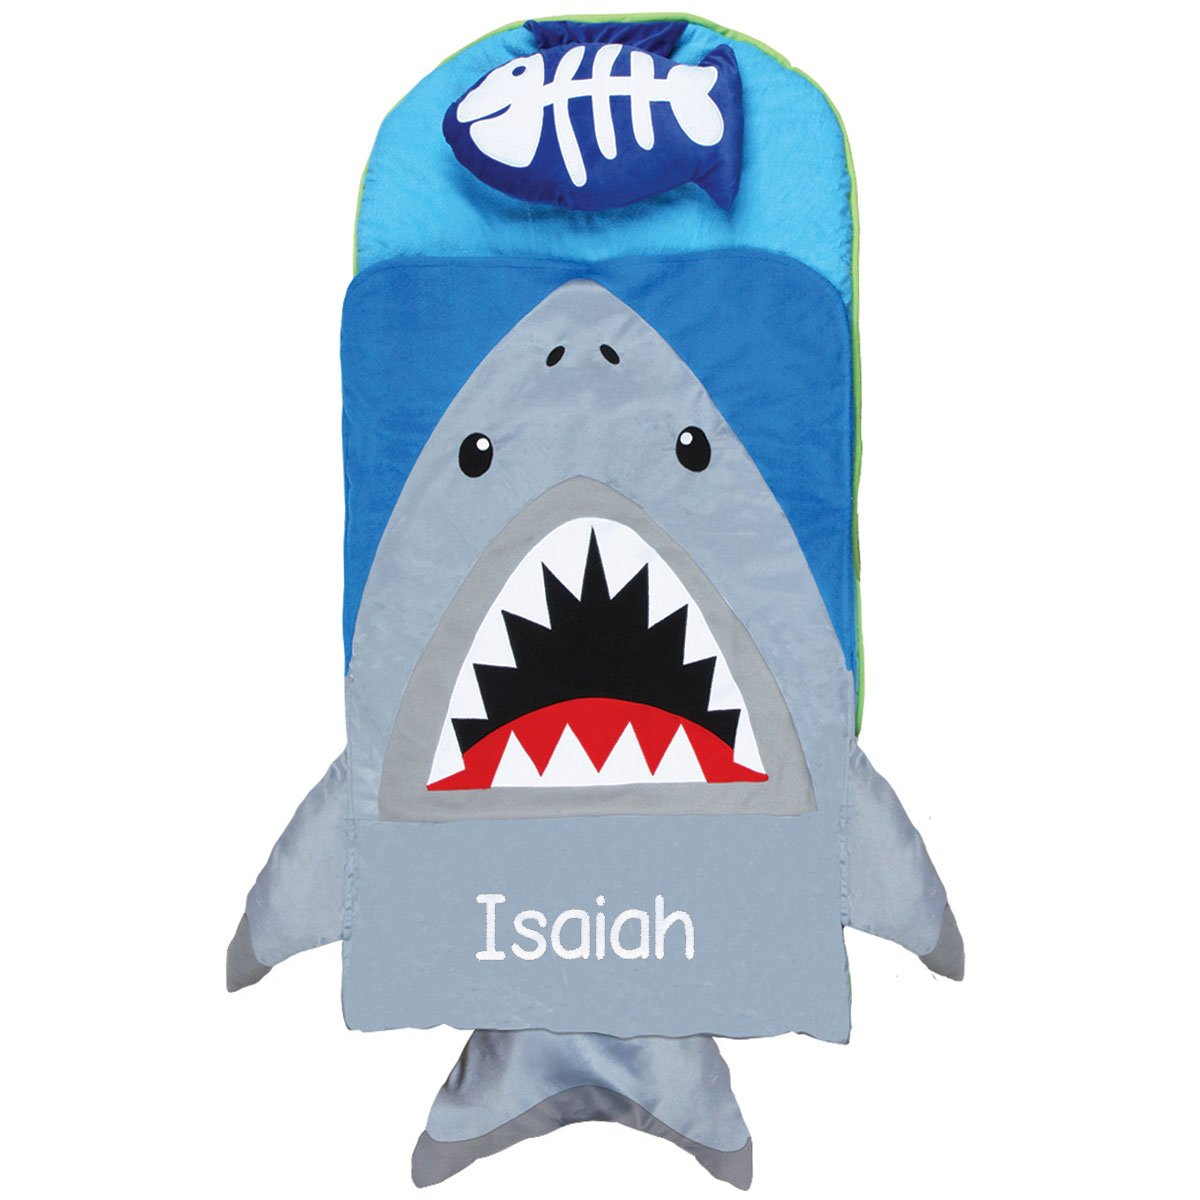 Personalized Stephen Joseph Shark Nap Mat with刺繍名前 B01K0SQUKA